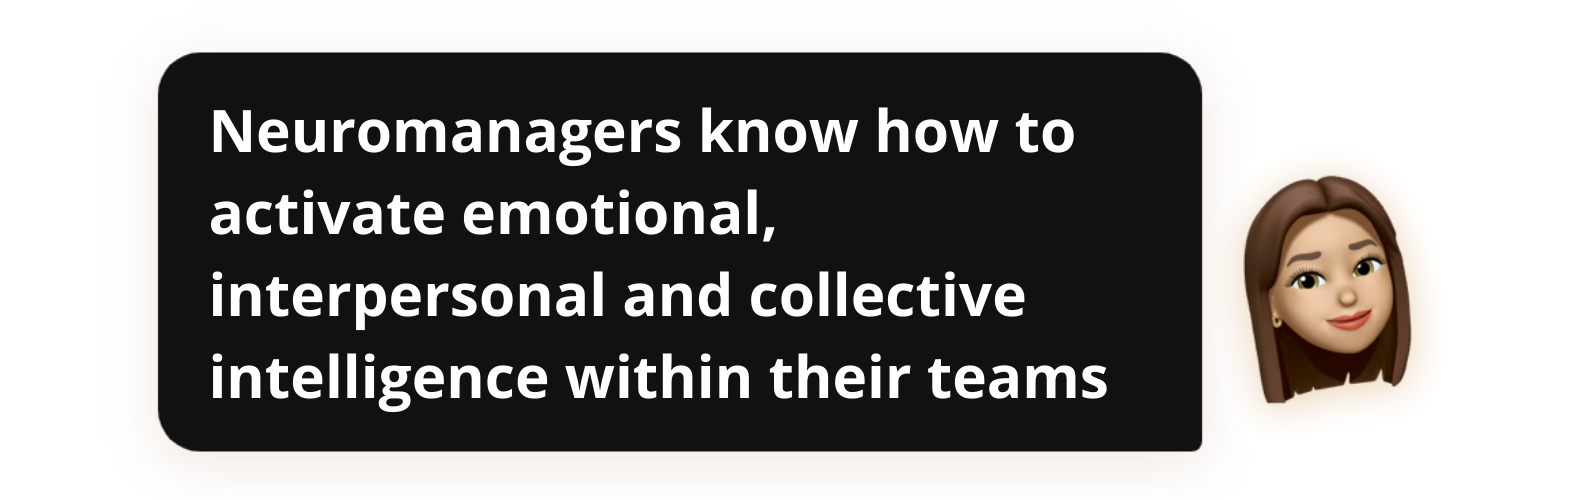 Neuromanagers know how to activate emotional, interpersonal and collective intelligence within their teams - Popwork